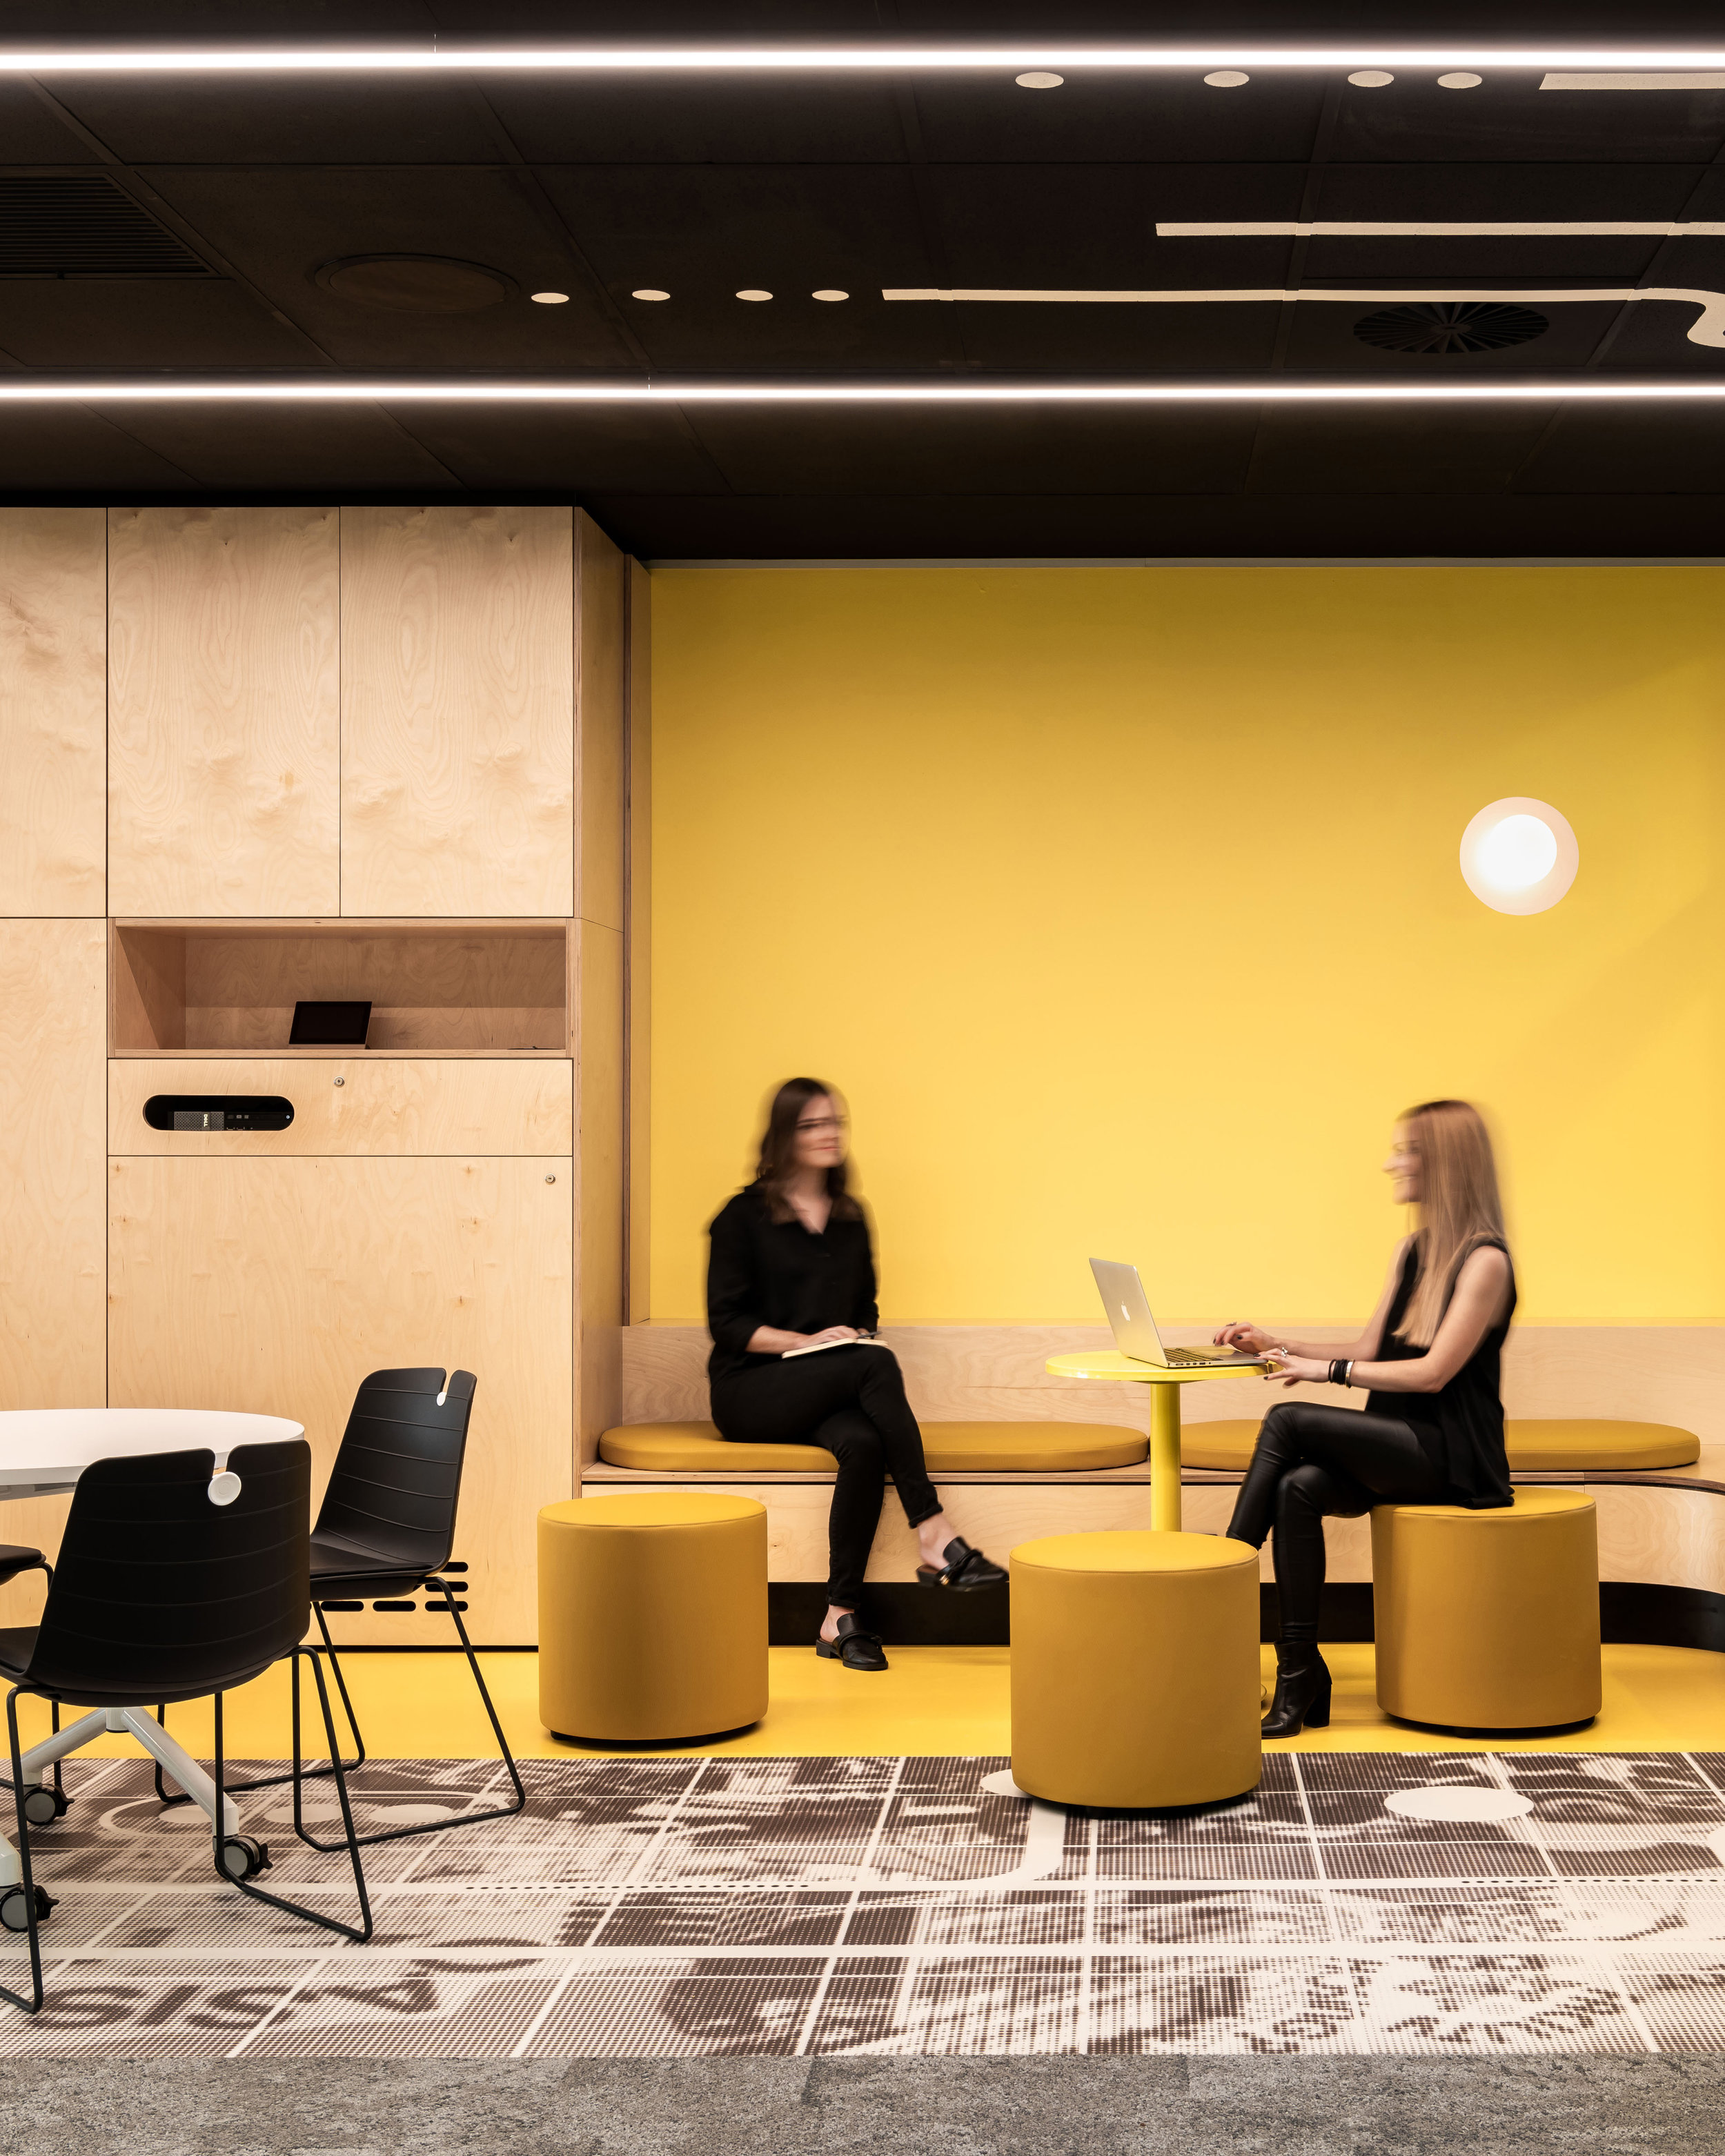 Dulux Colour Awards 2019 Commercial Interior: Public and Hospitality Commendation Project _ Curtin Think Space (WA) by Arcadia Design Studio Photographer _ Dion Robeson